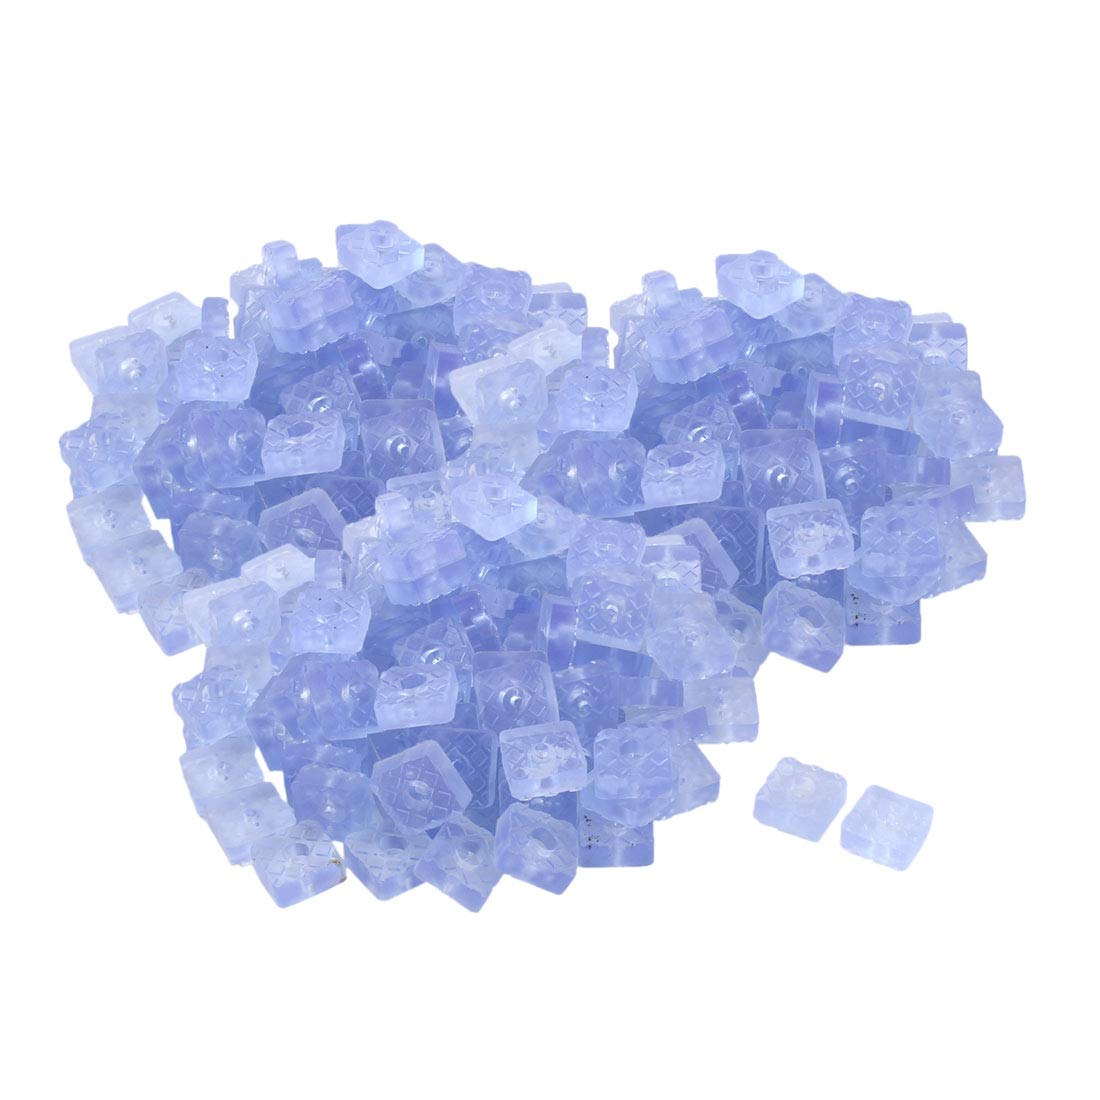 OKSLO School rubber square table chair foot protector pad clear blue 22 x 22mm 300 pcs